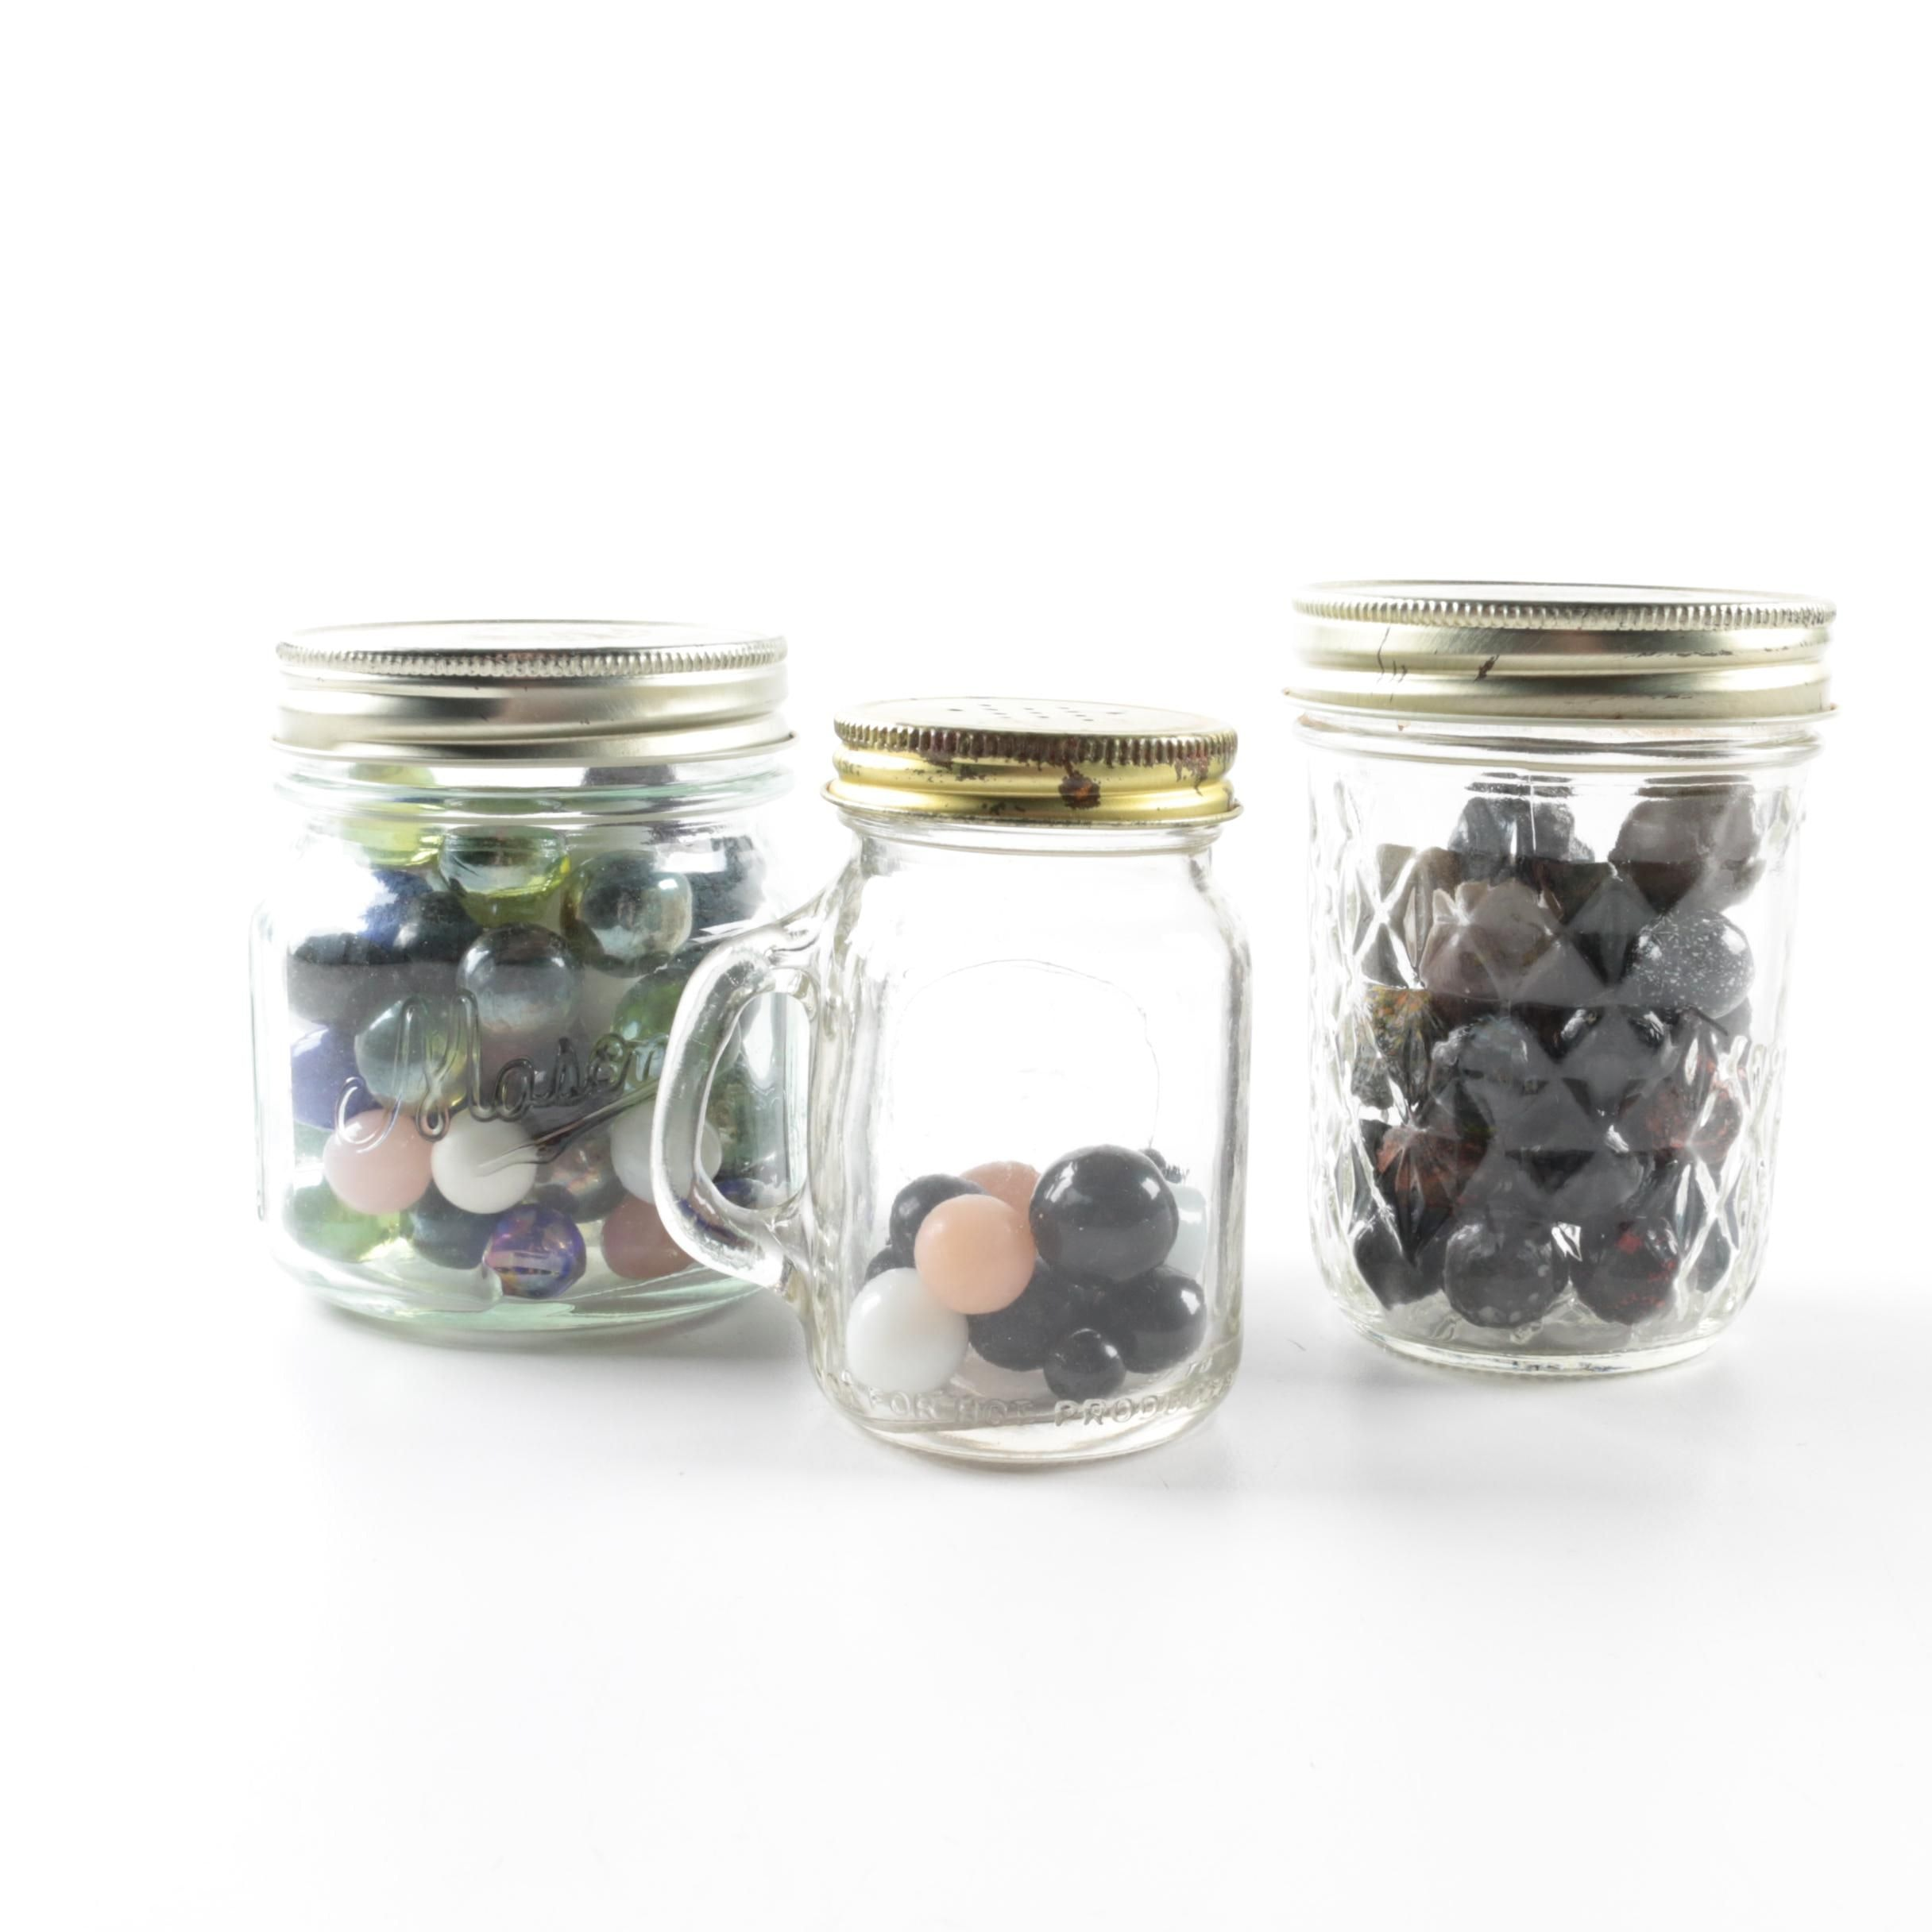 Jars of Glass Marbles